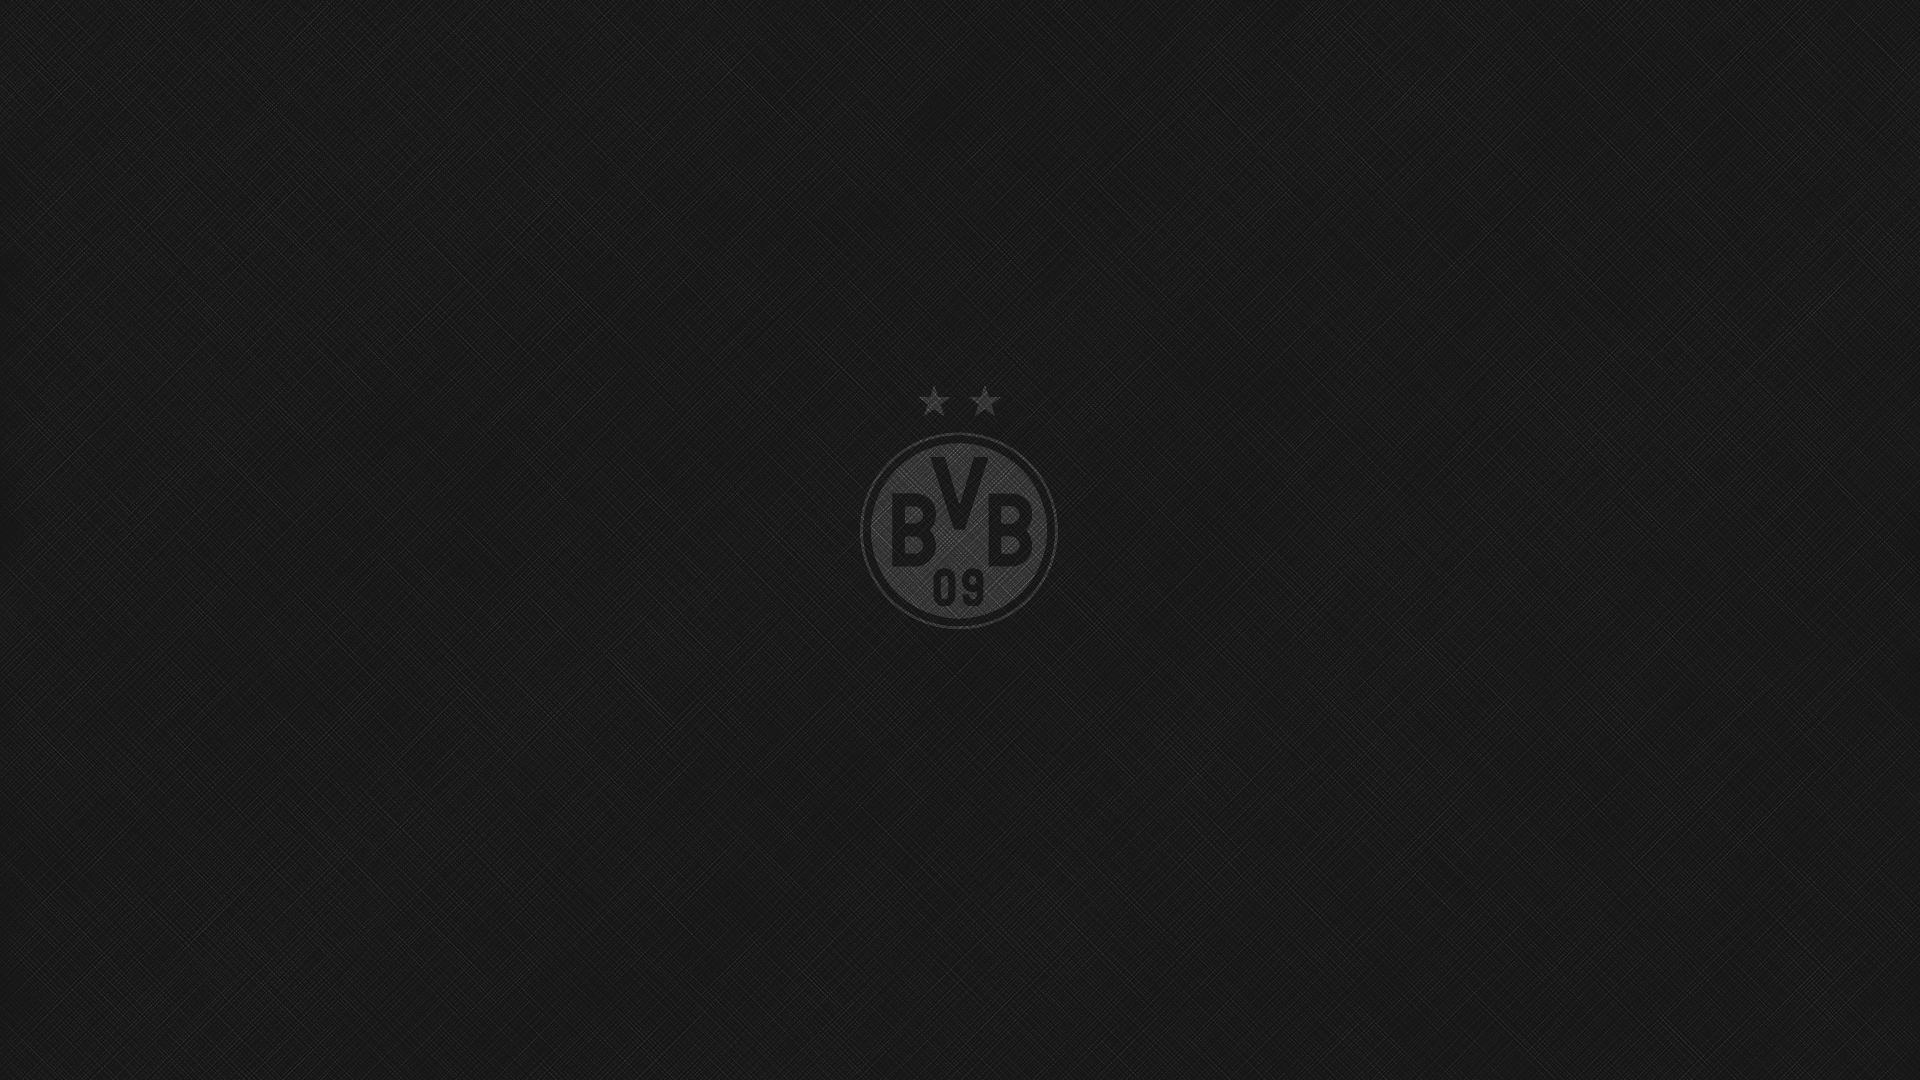 Bvb Wallpaper5 by Gery...